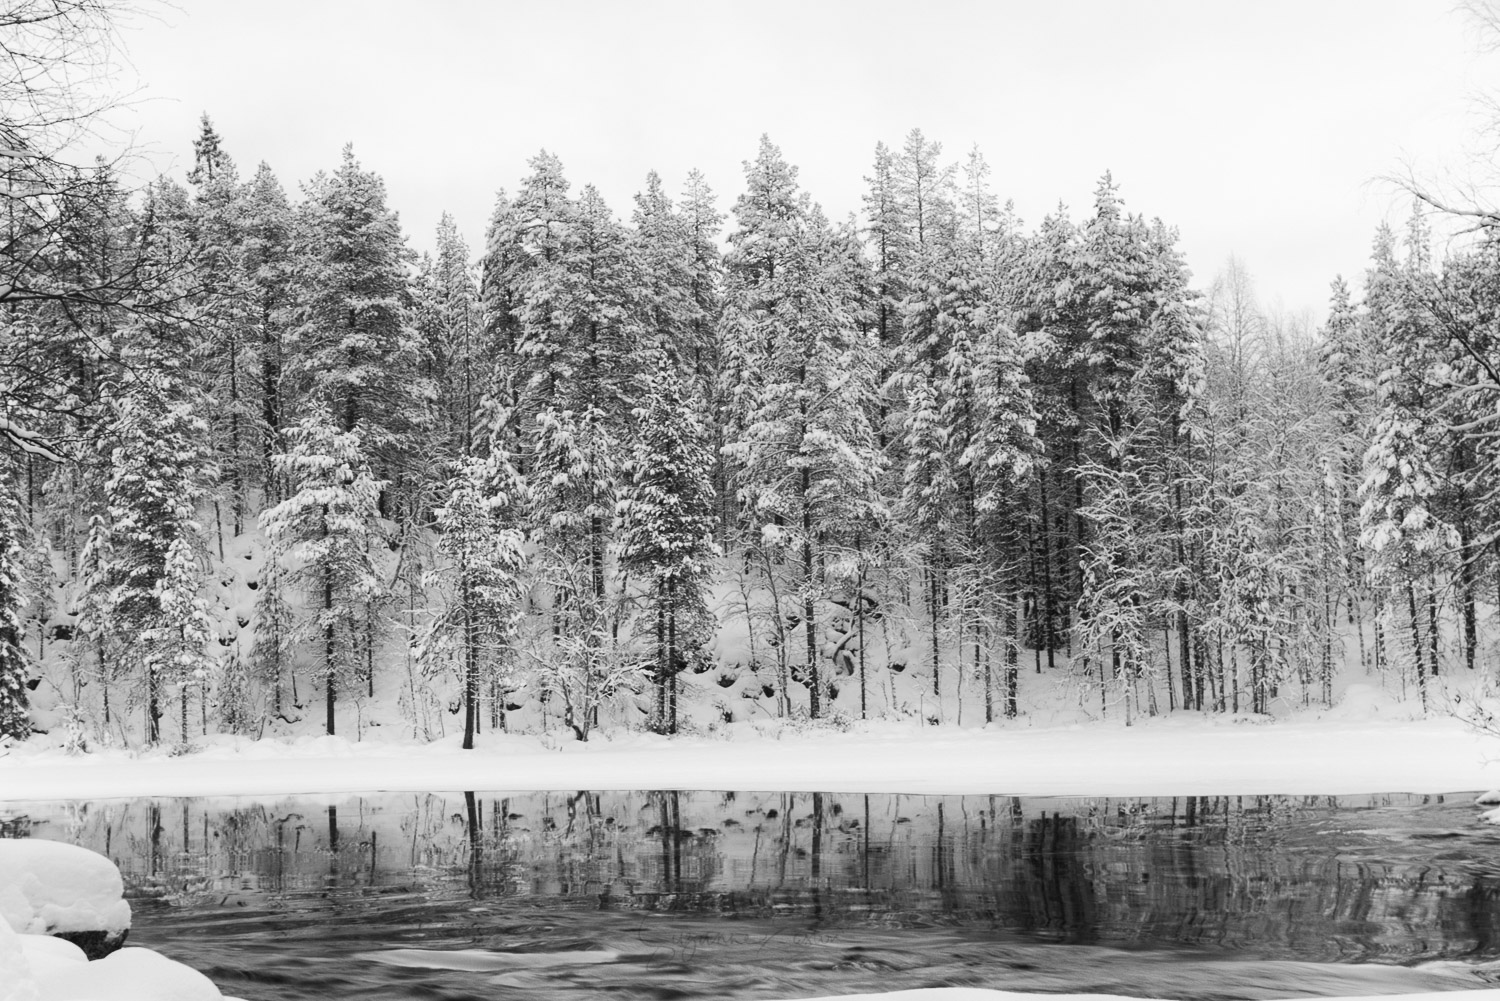 Winter monochrome reflections